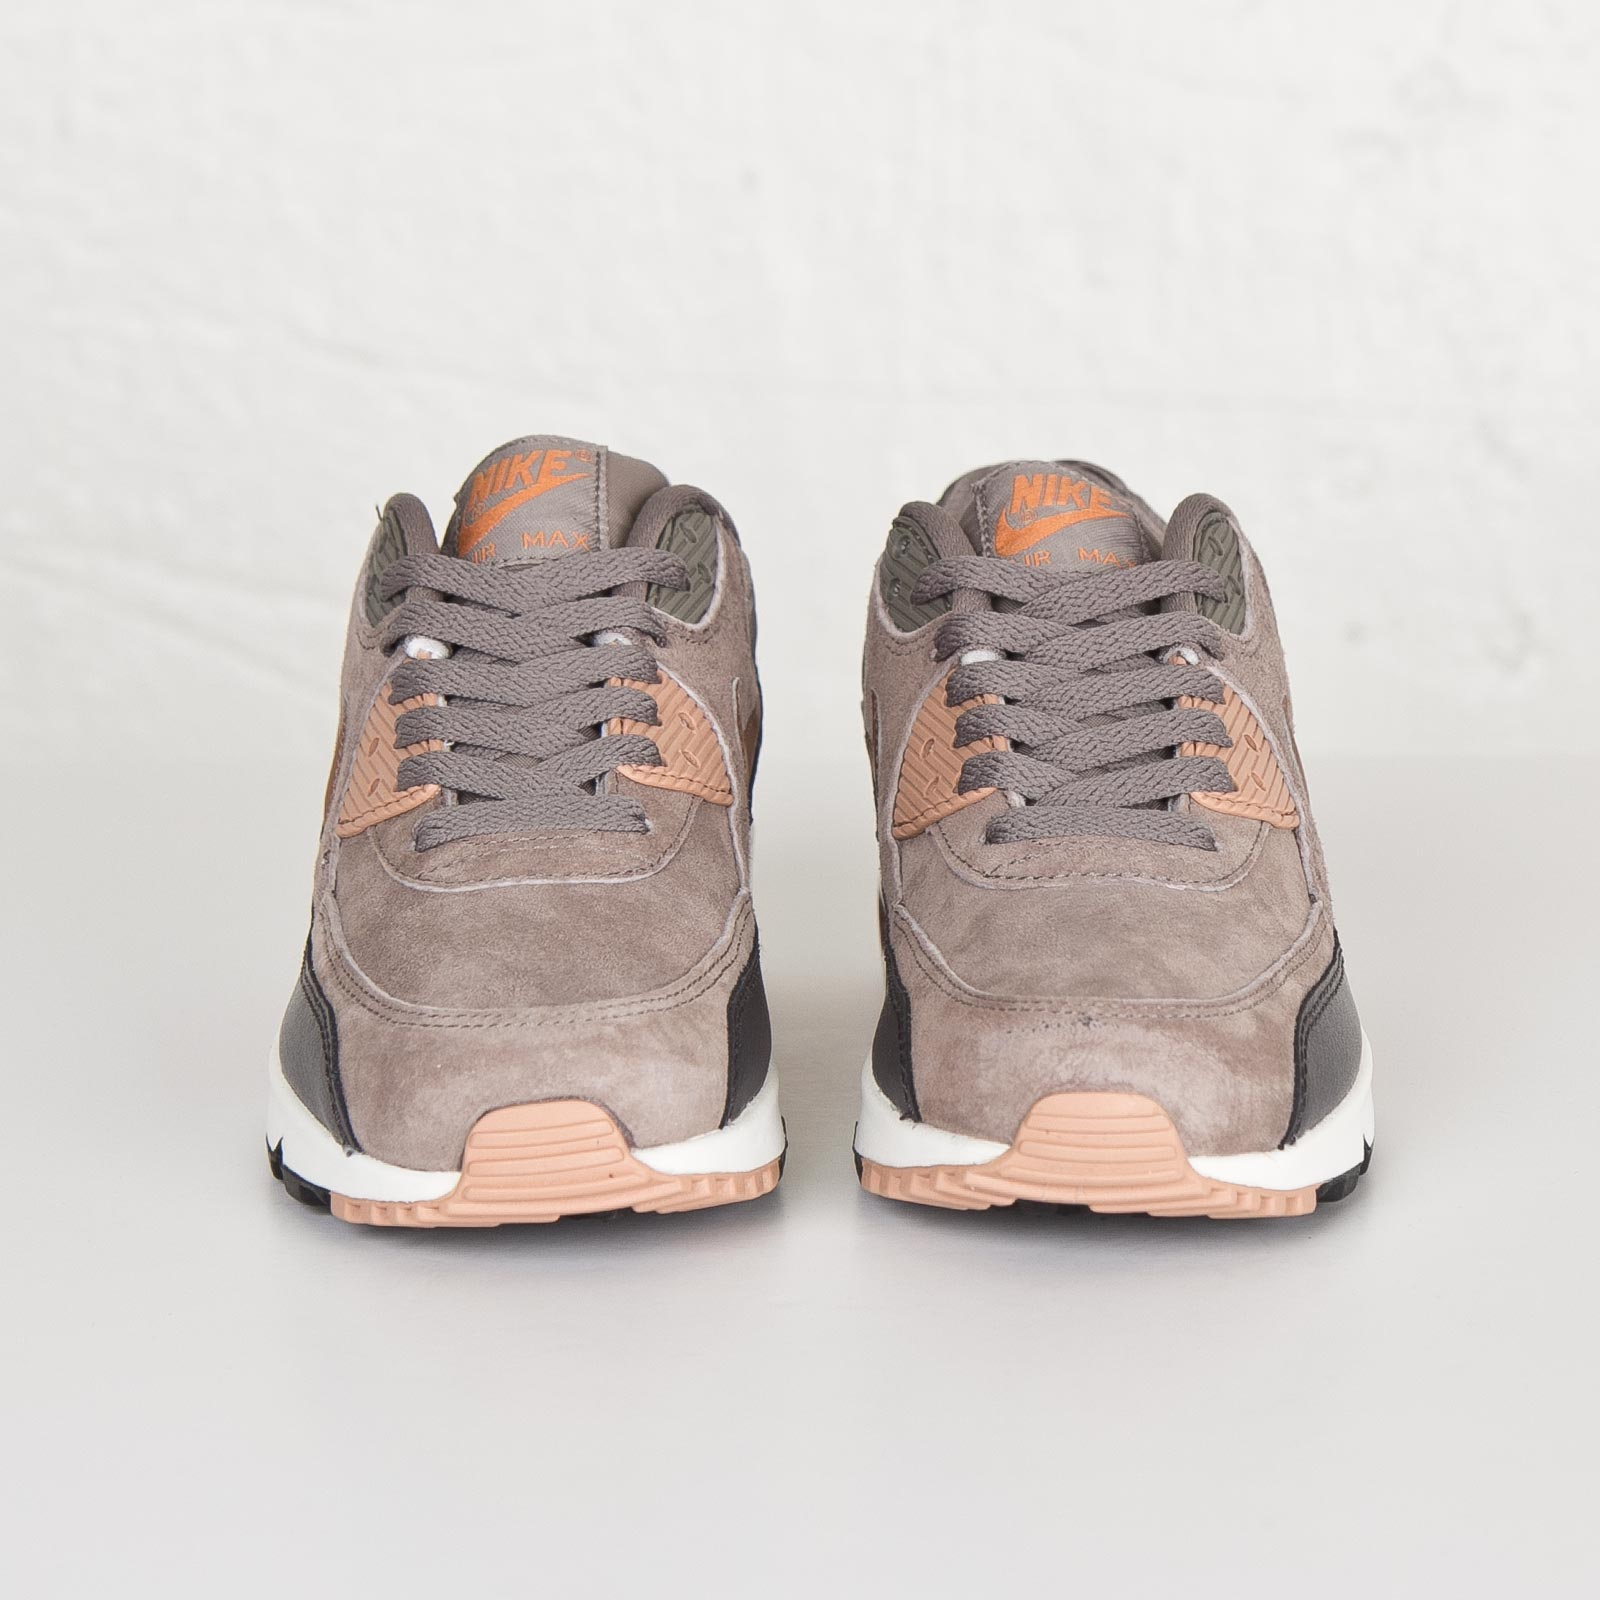 new arrival 0b104 906ec ... Nike Wmns Air Max 90 Leather ...